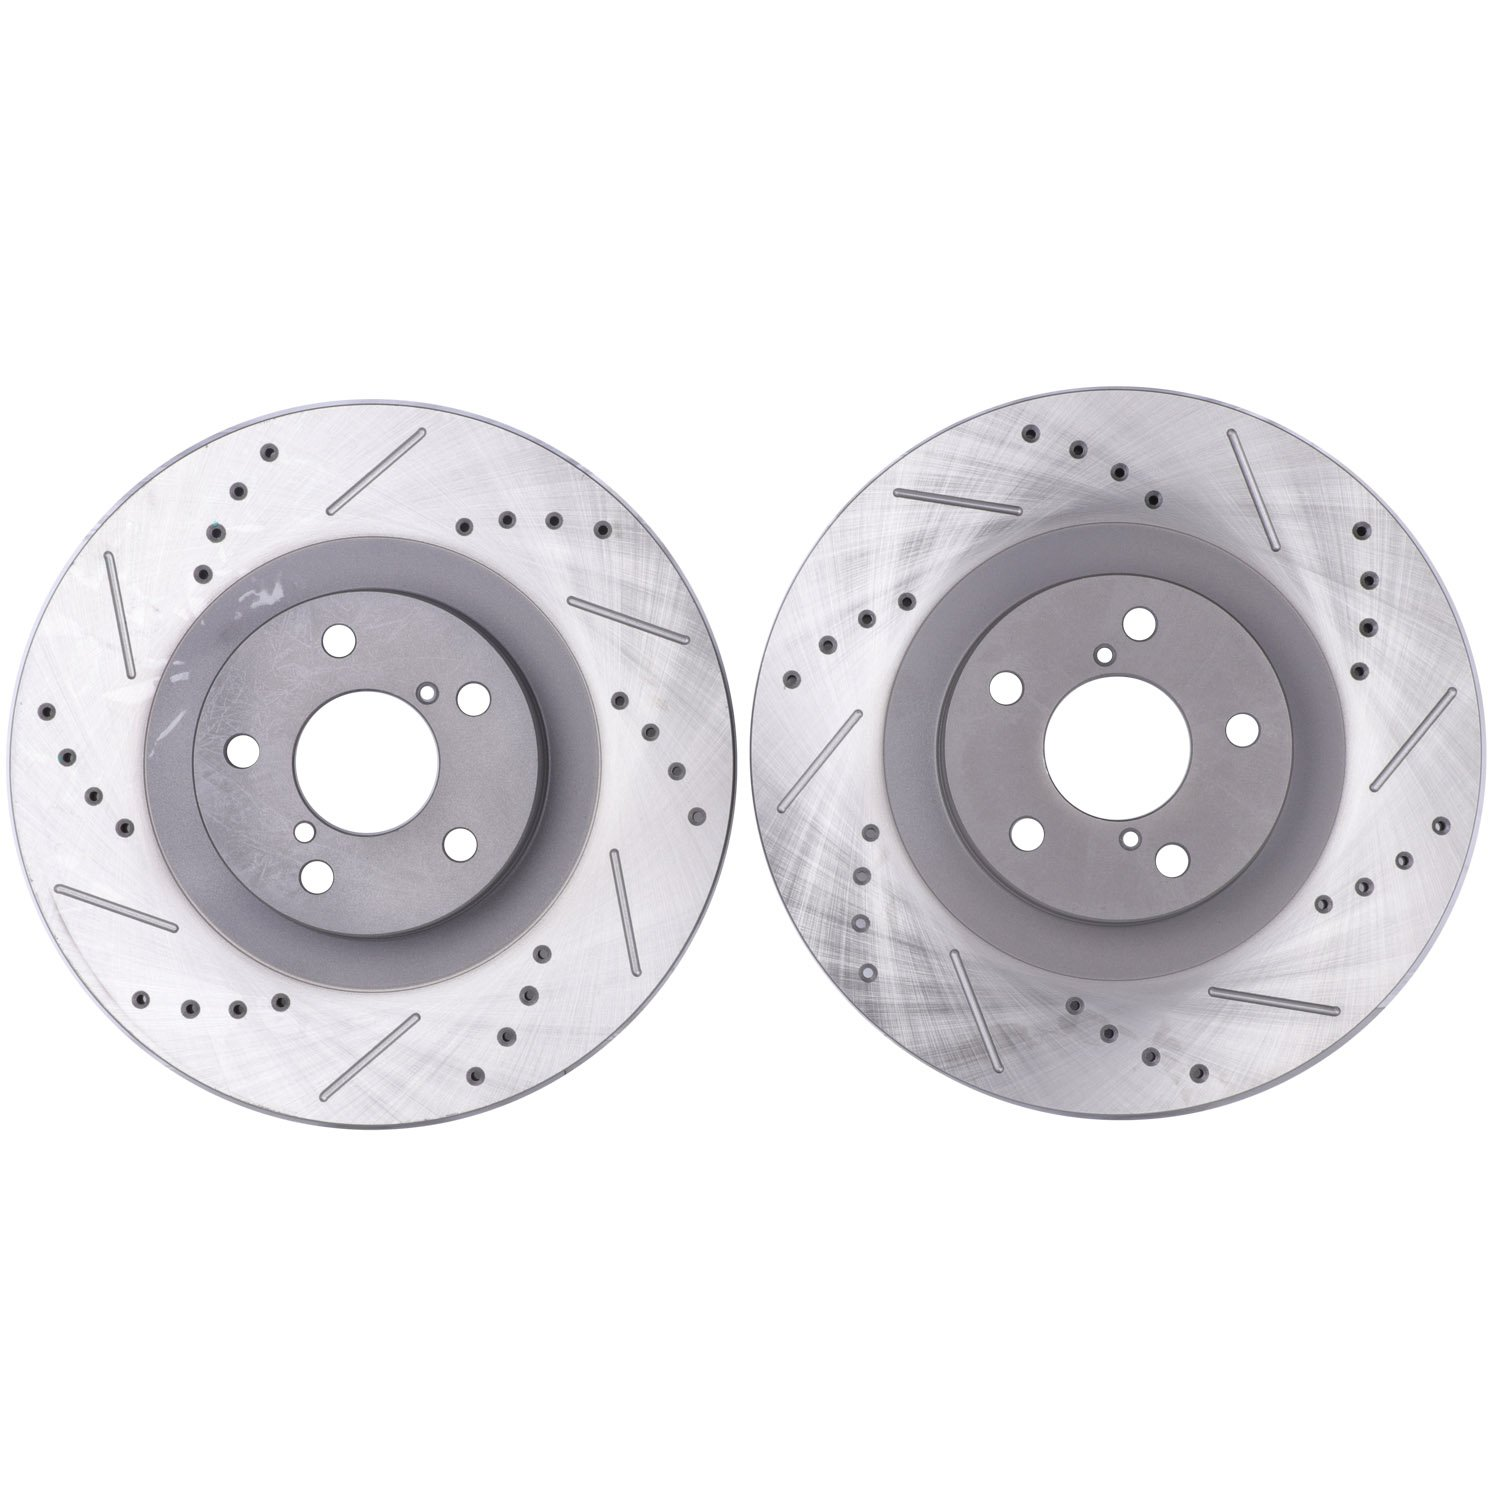 Front 2 Pack OE STOP OE34203 Premium Drilled Slotted and Corrosion Protection Coated Rotor